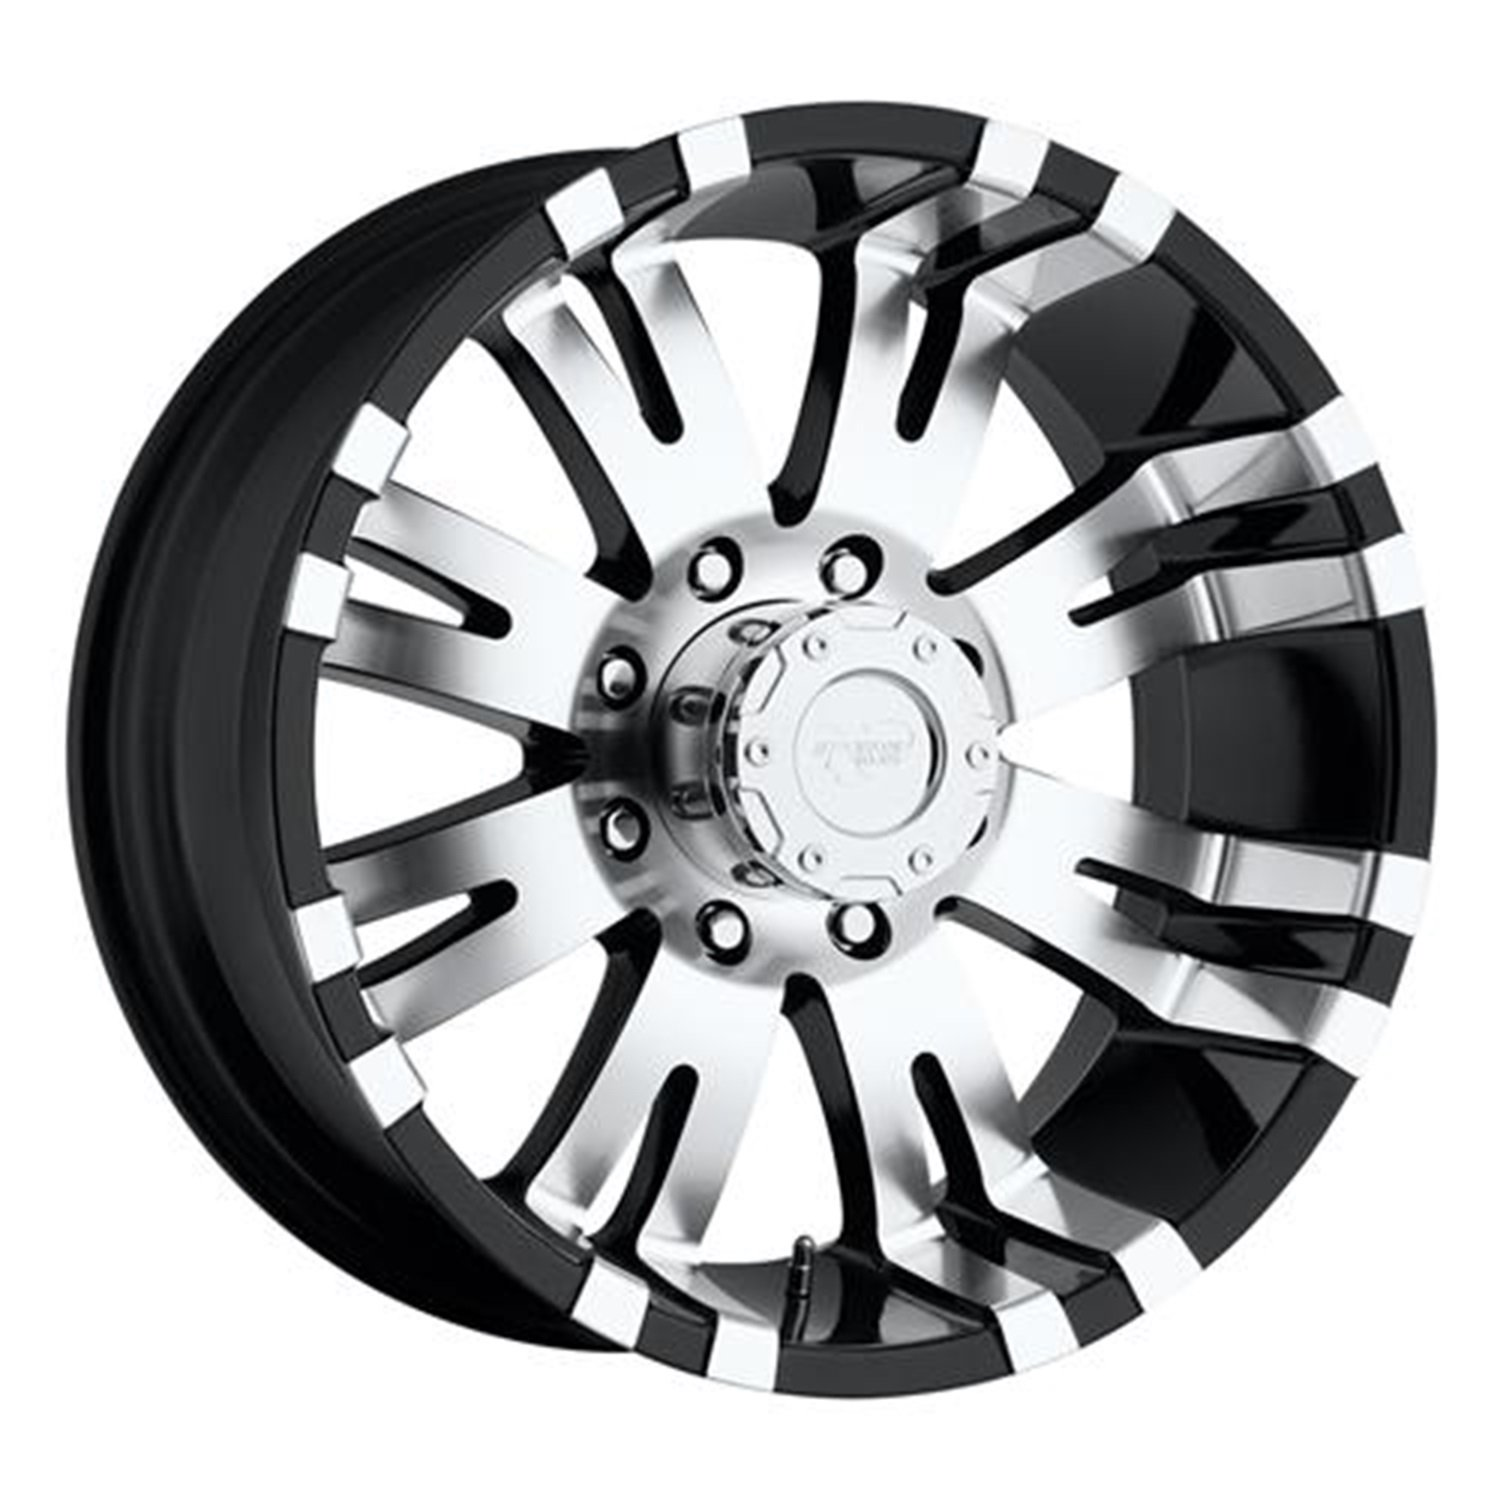 Pro Comp Alloys Series 01 Gloss Black Wheel with Machined Face (17x9''/8x165.1mm)